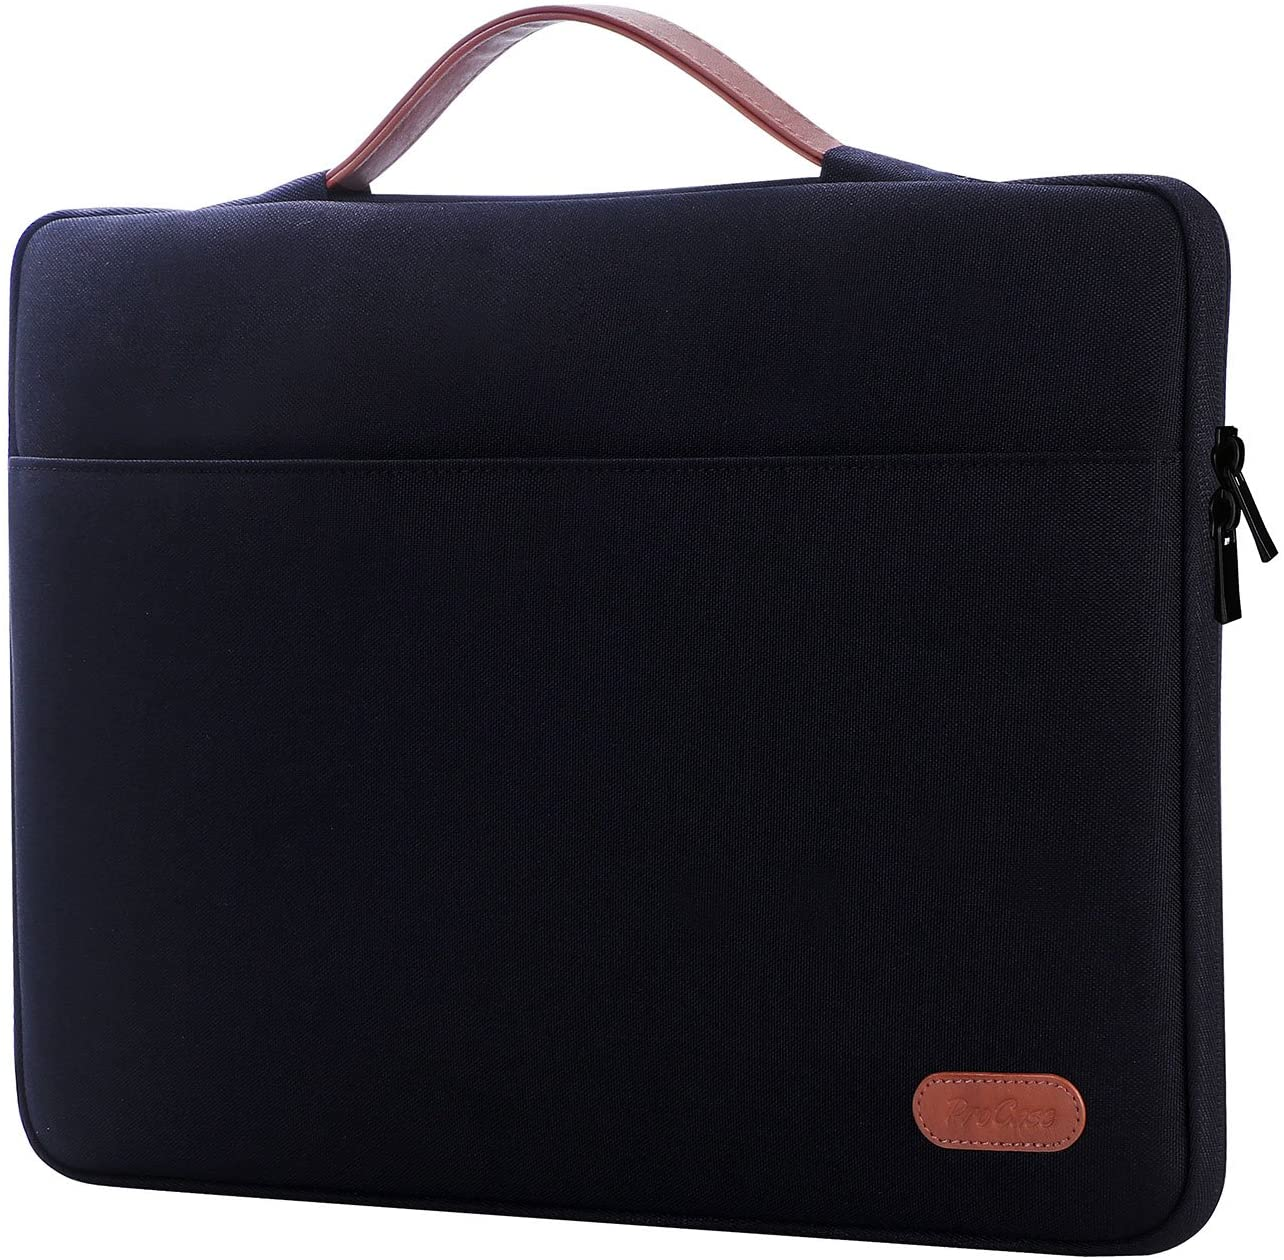 laptop case for travel